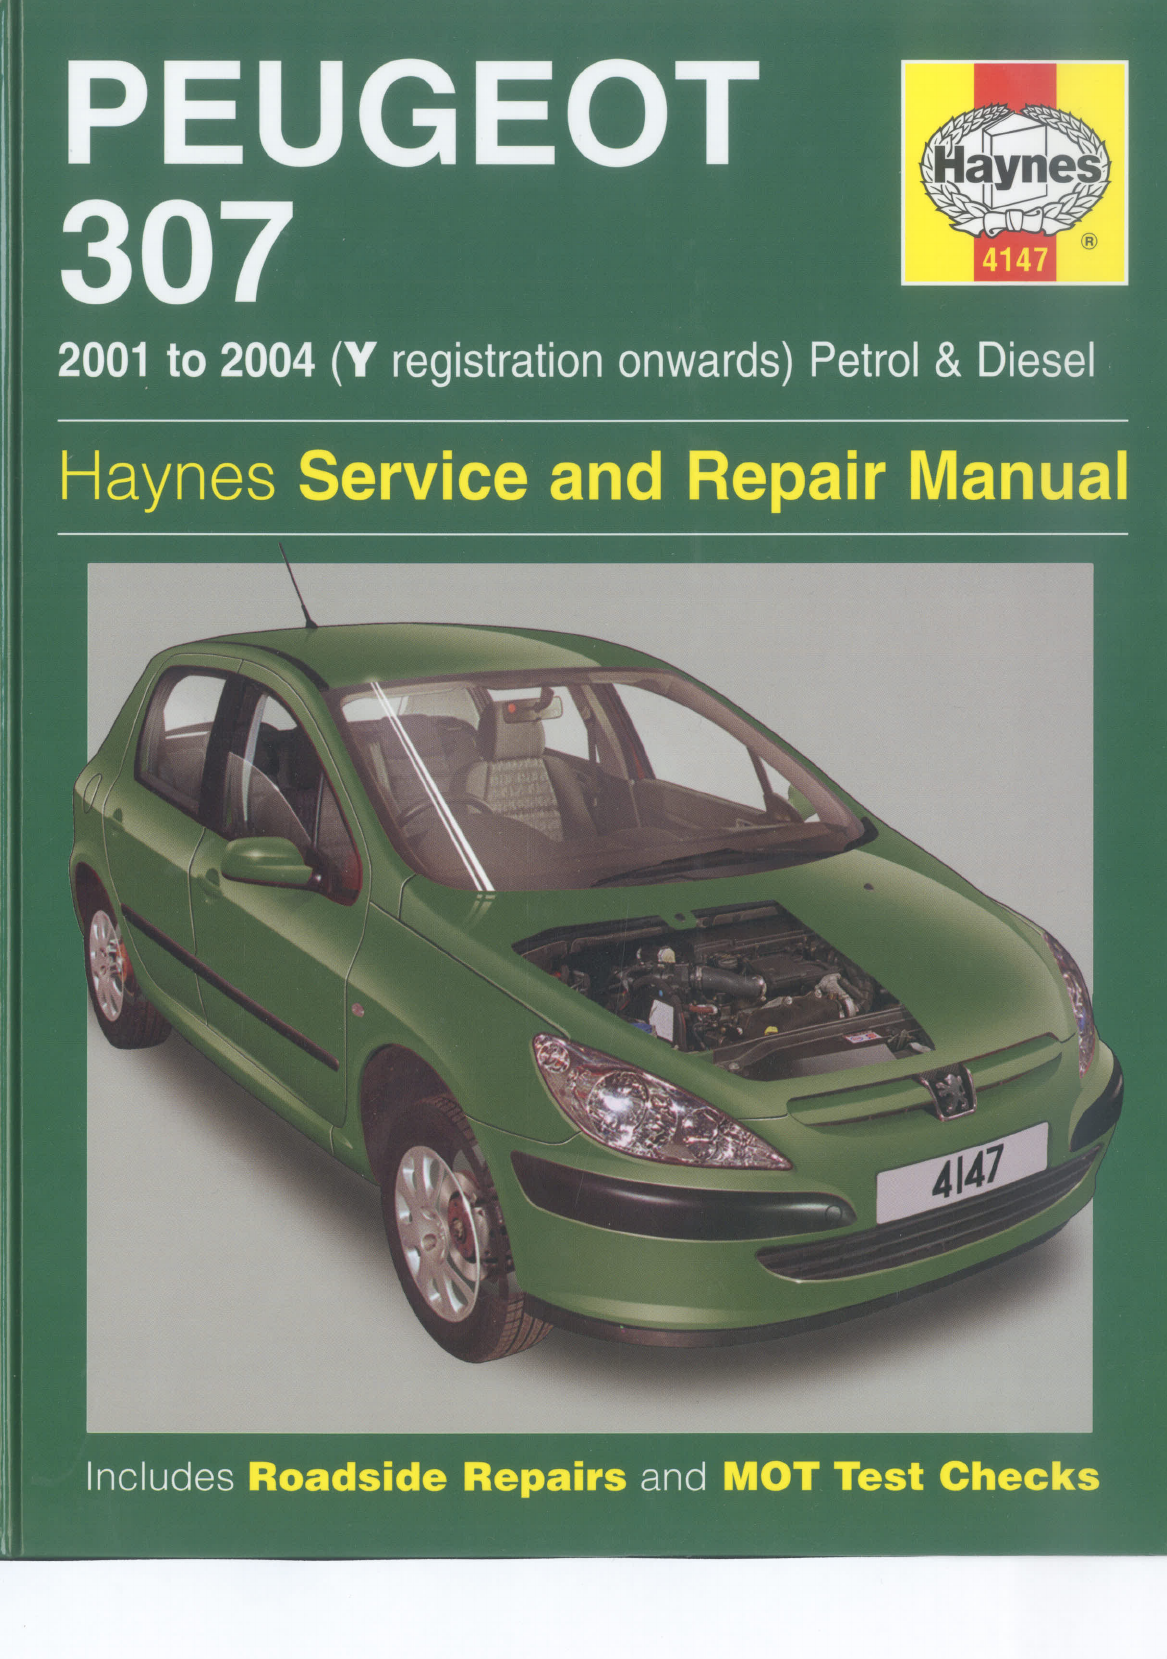 peugeot 307 2001 2004 workshop manual haynes pdf